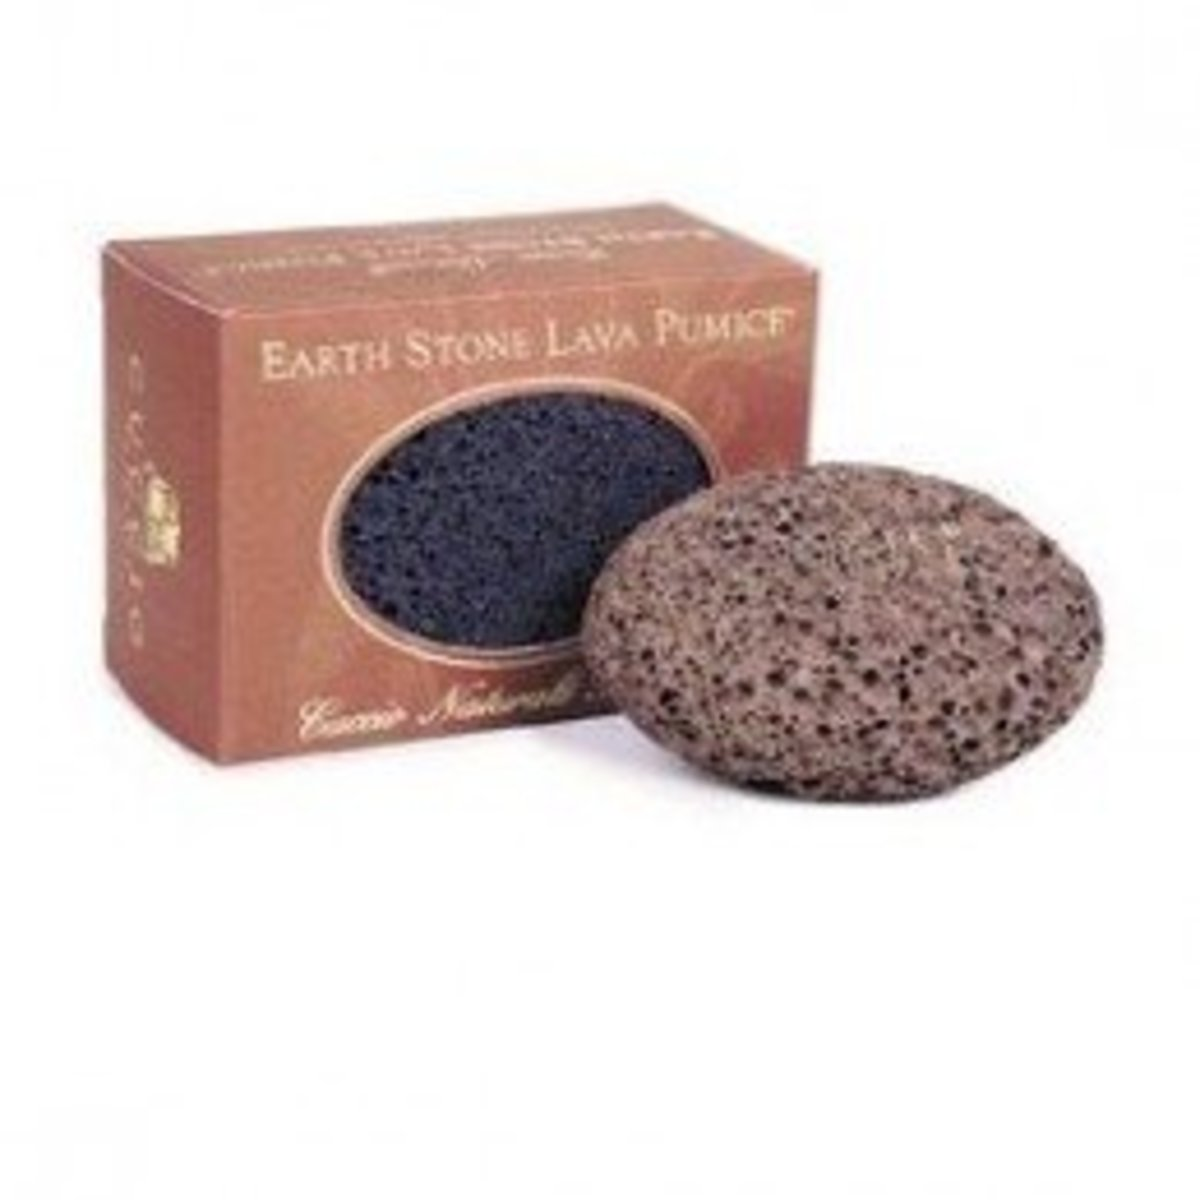 The Cuccio Naturale Earth Stone Pumice is a great medium-sized stone that's easy to grip.